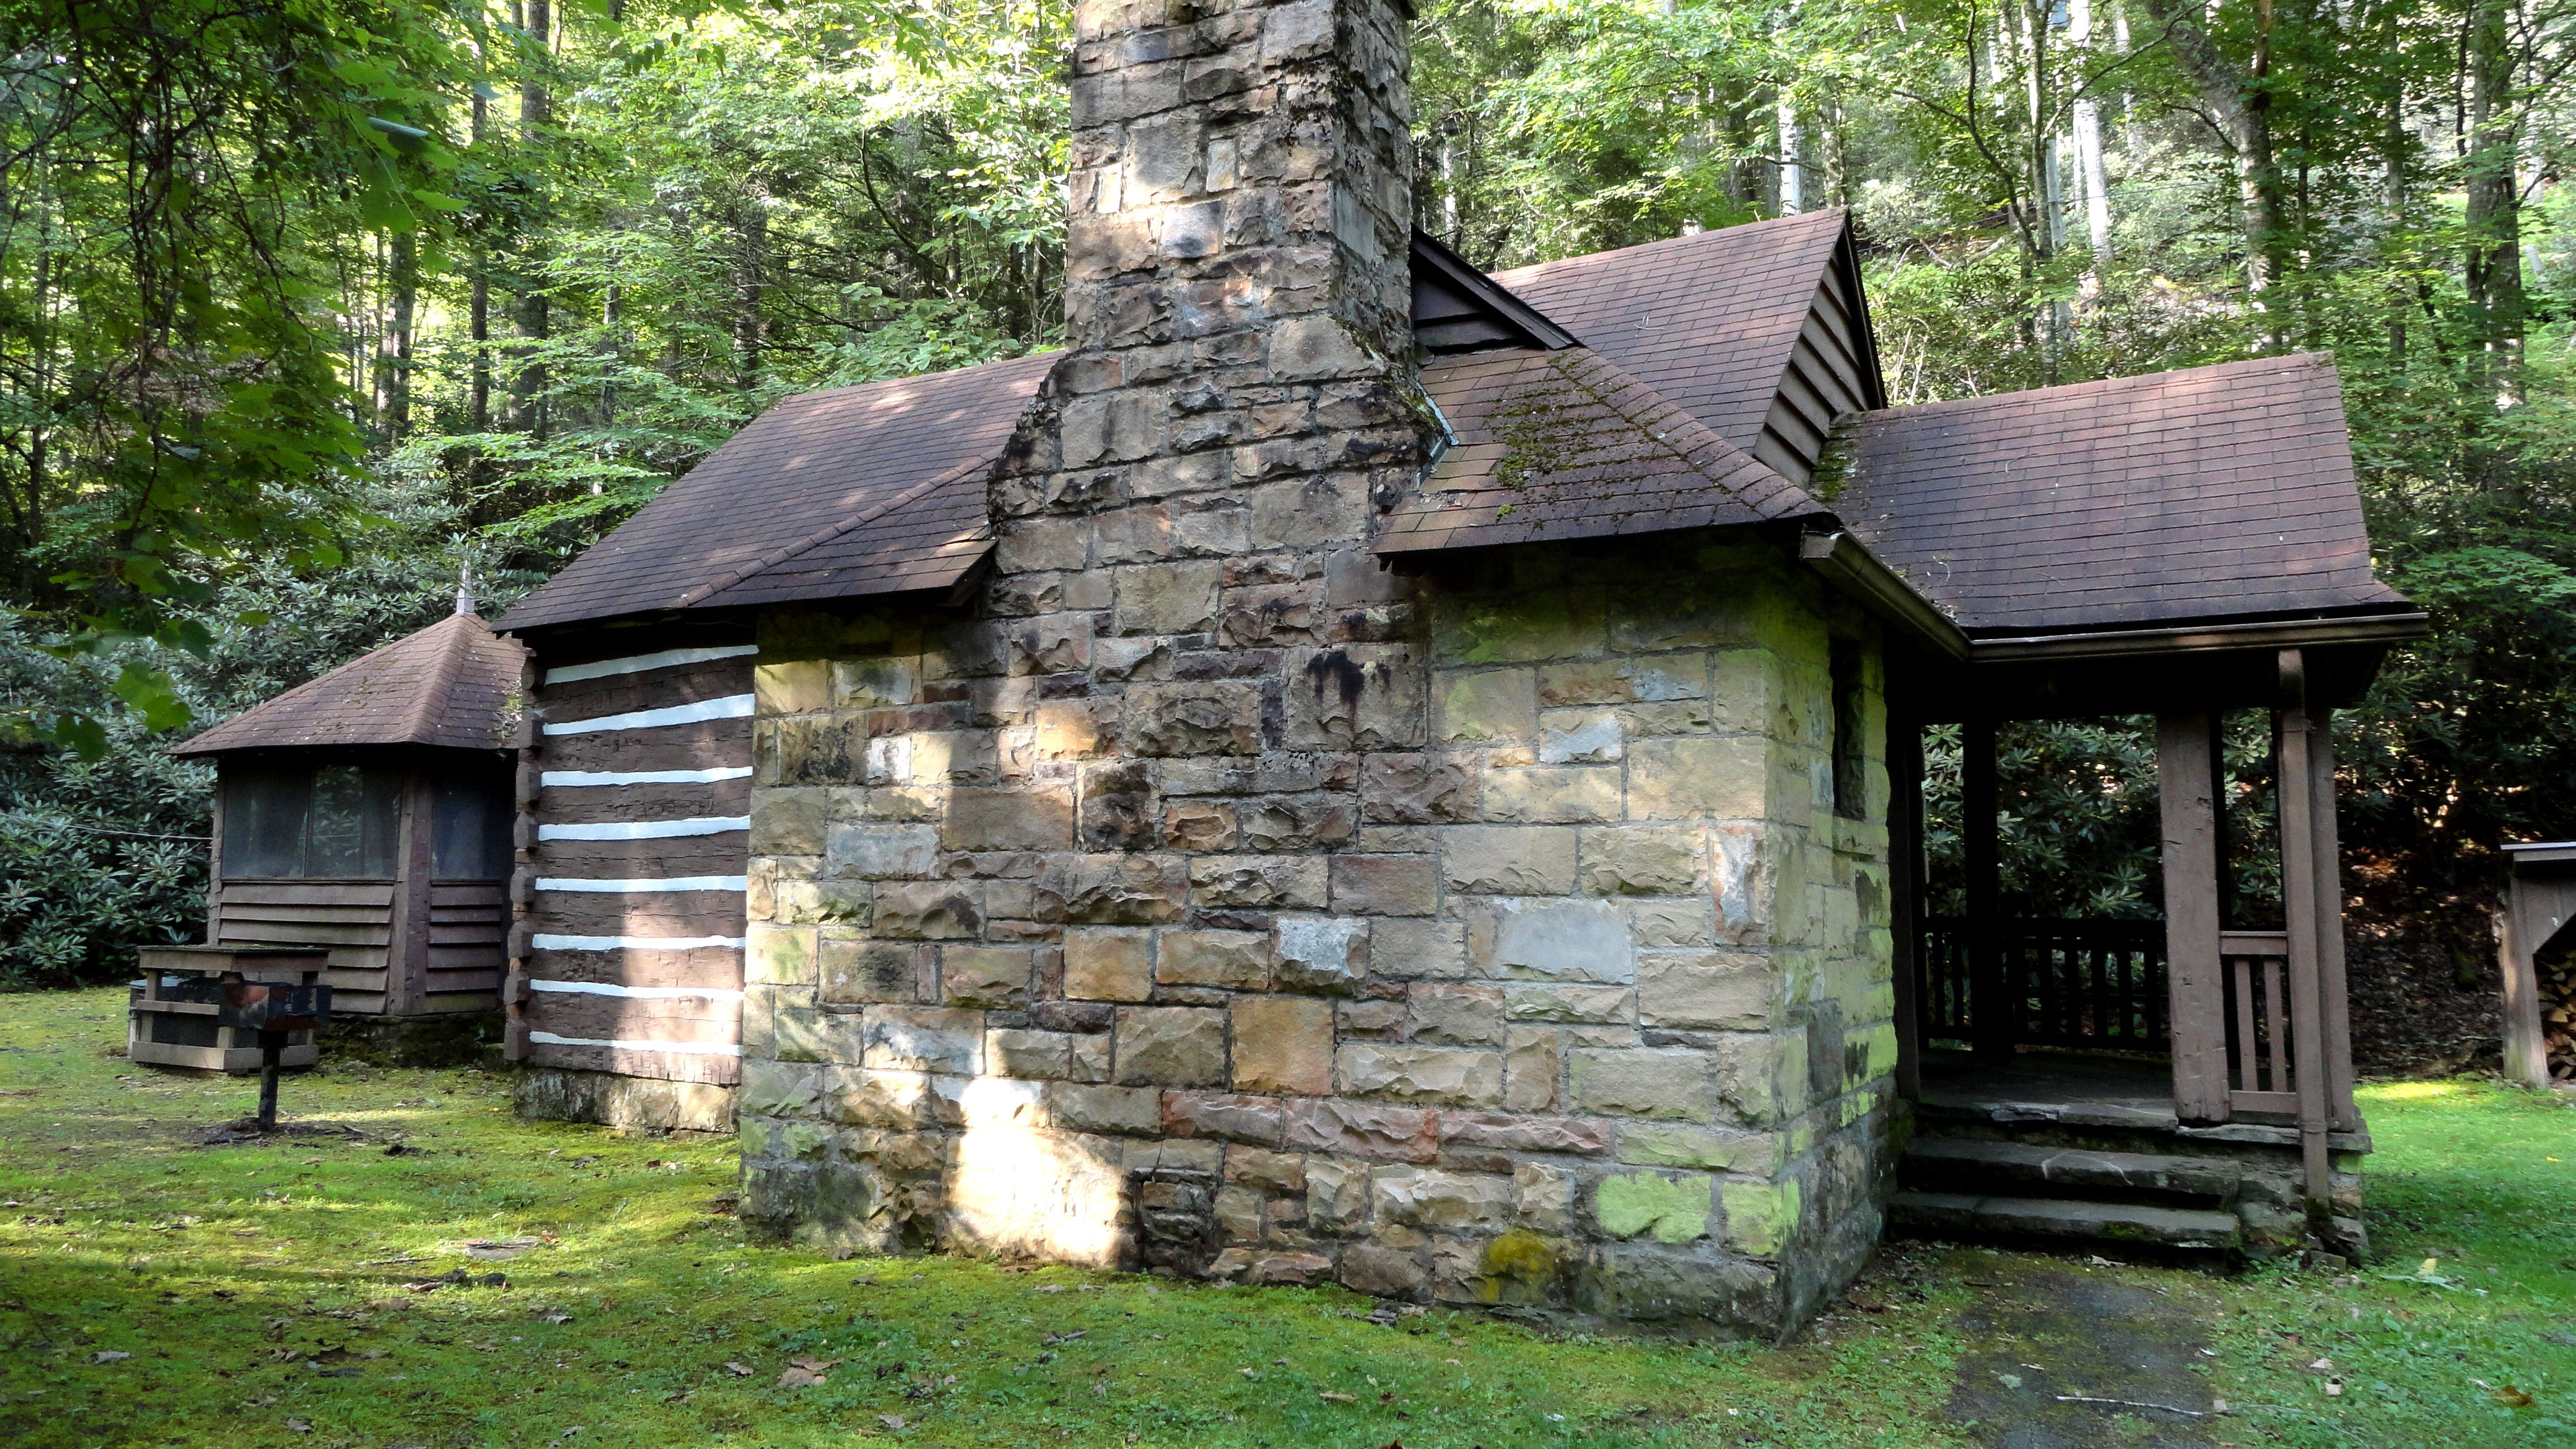 Rustic Cabin We Love Staying In At Watoga State Park In